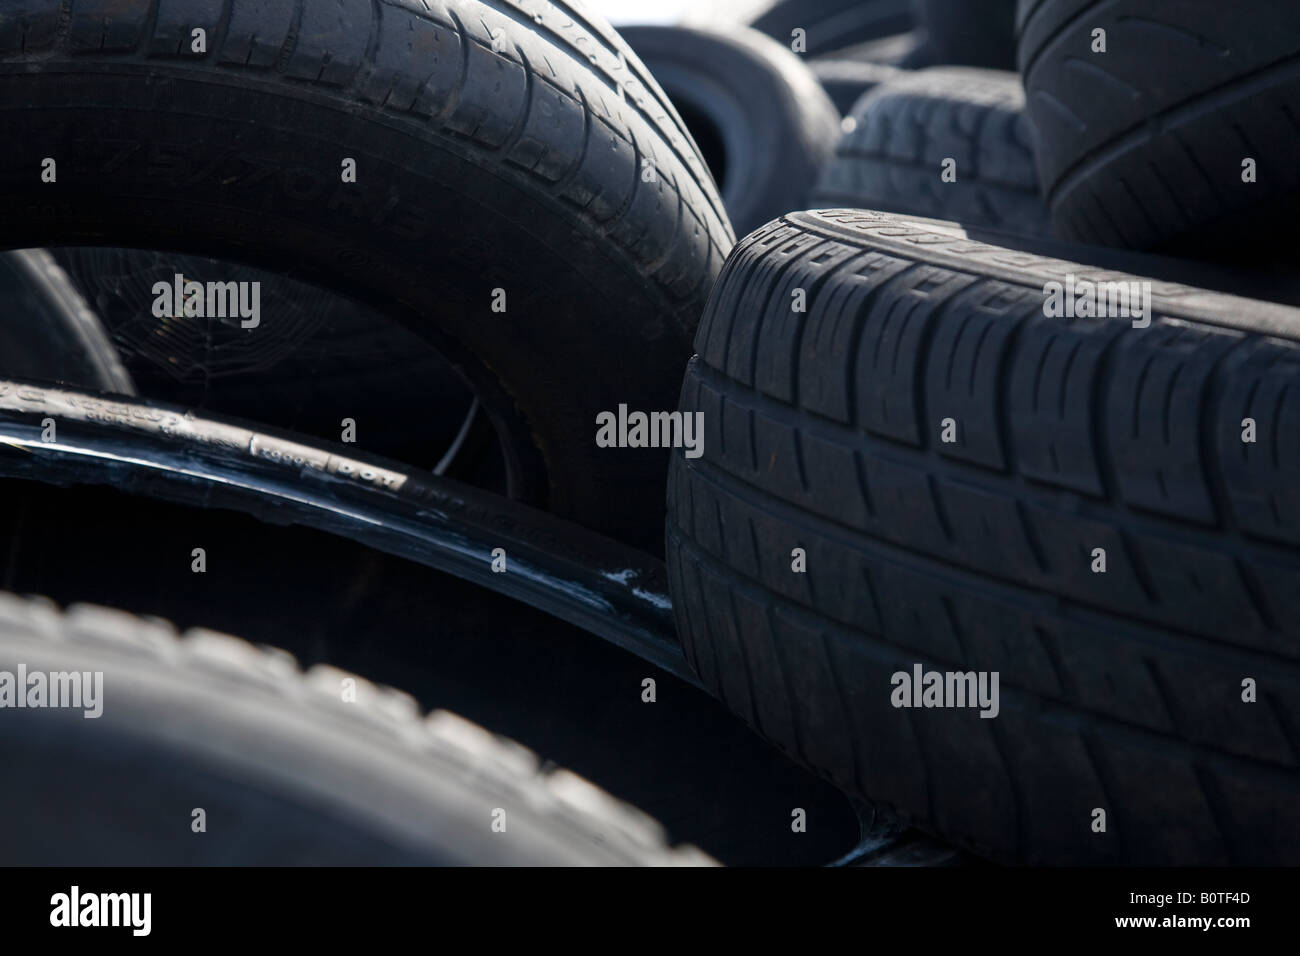 Black, part worn rubber car tyres are piled up and waiting to be recycled. - Stock Image